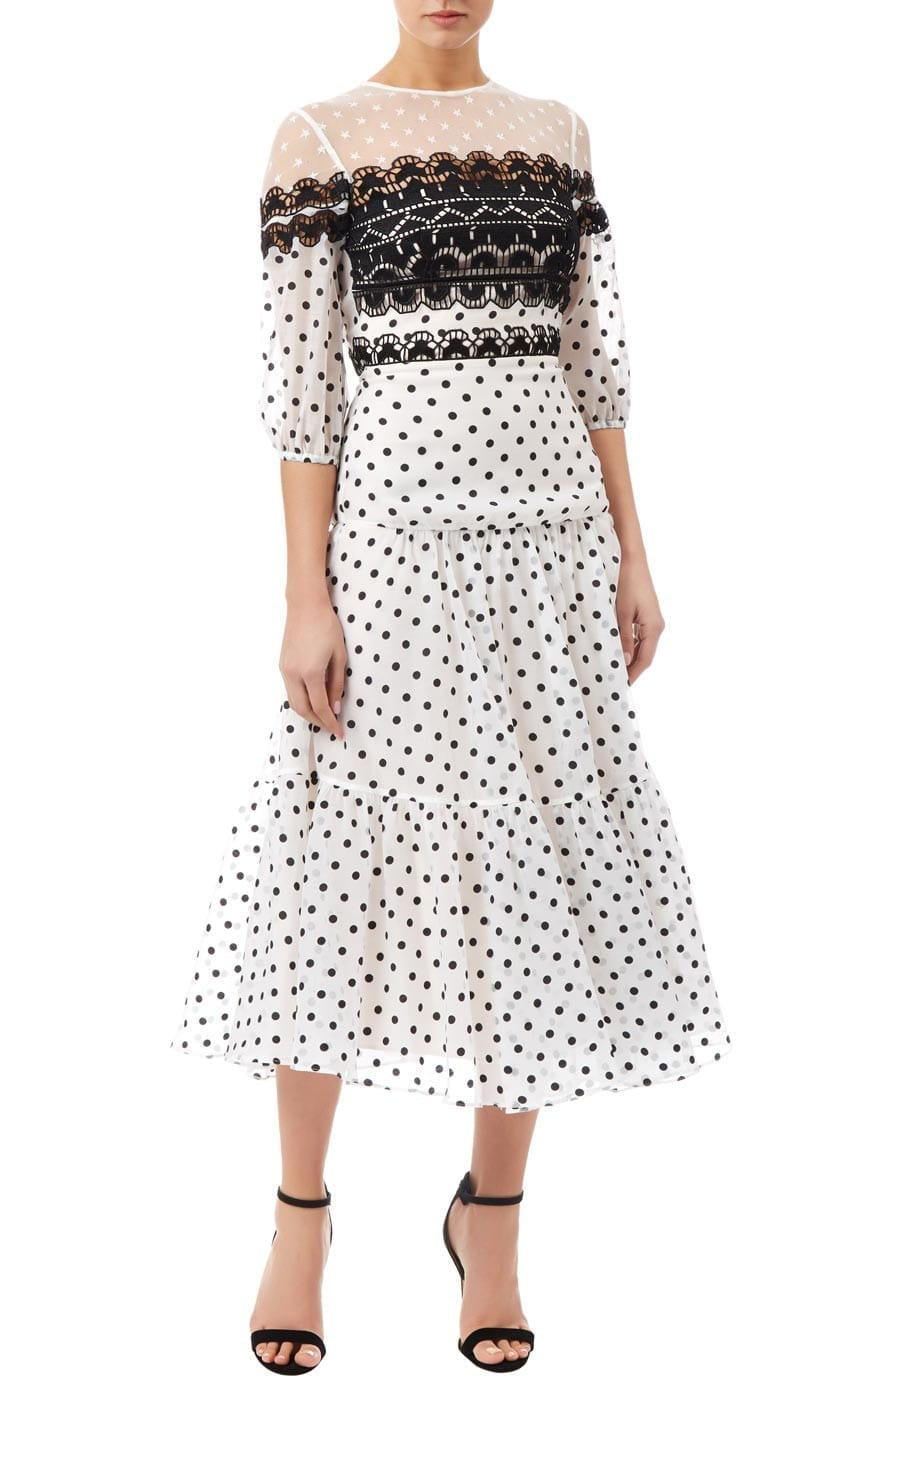 TEMPERLEY LONDON Prix Midi White Dress